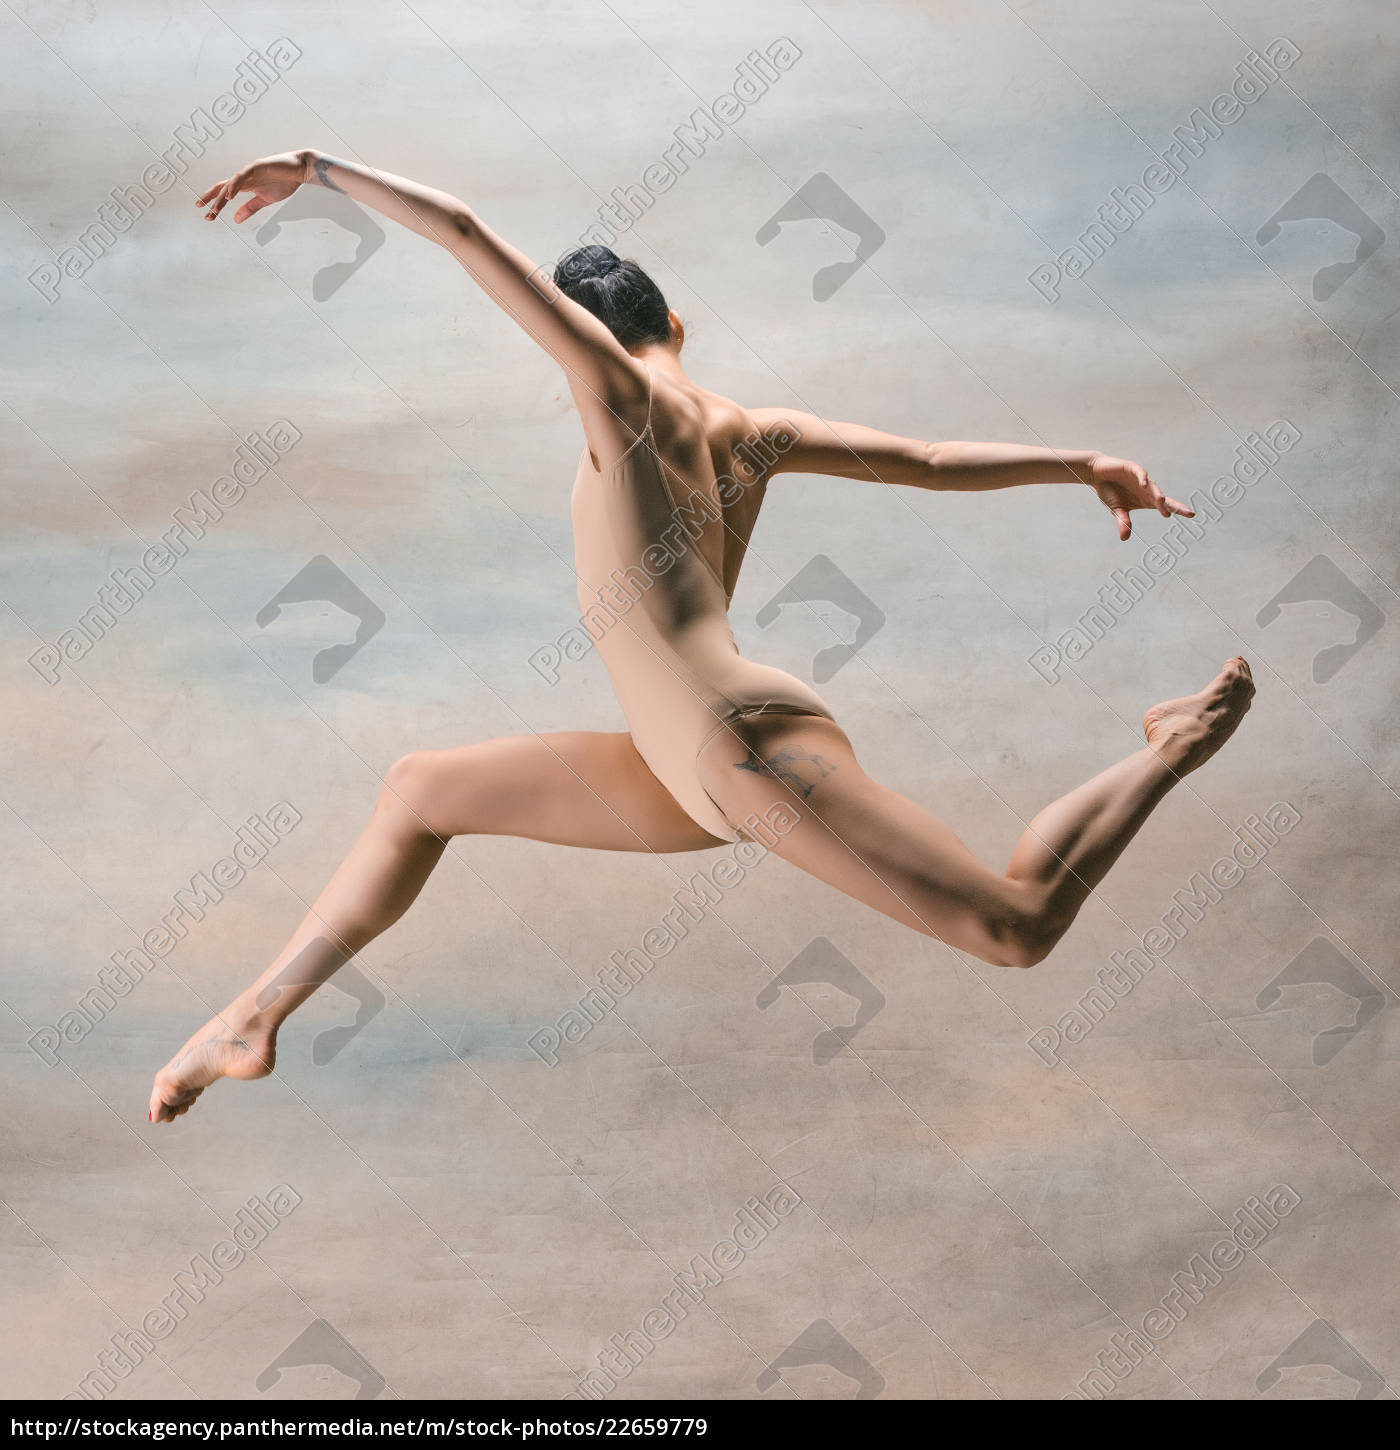 young, beautiful, modern, style, dancer, jumping - 22659779